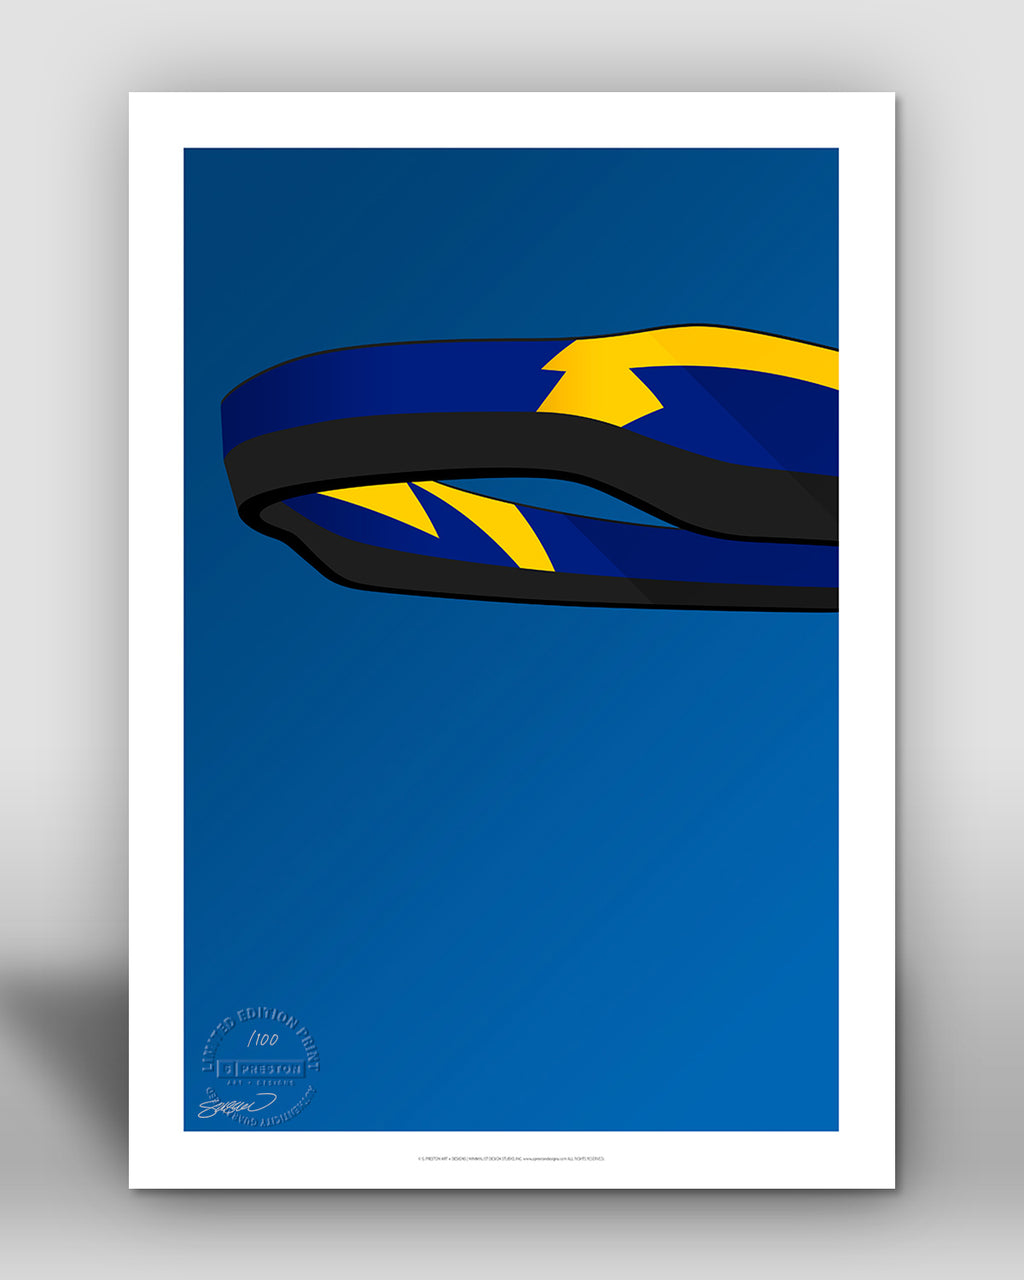 Minimalist SoFi Stadium - Los Angeles Chargers - S. Preston